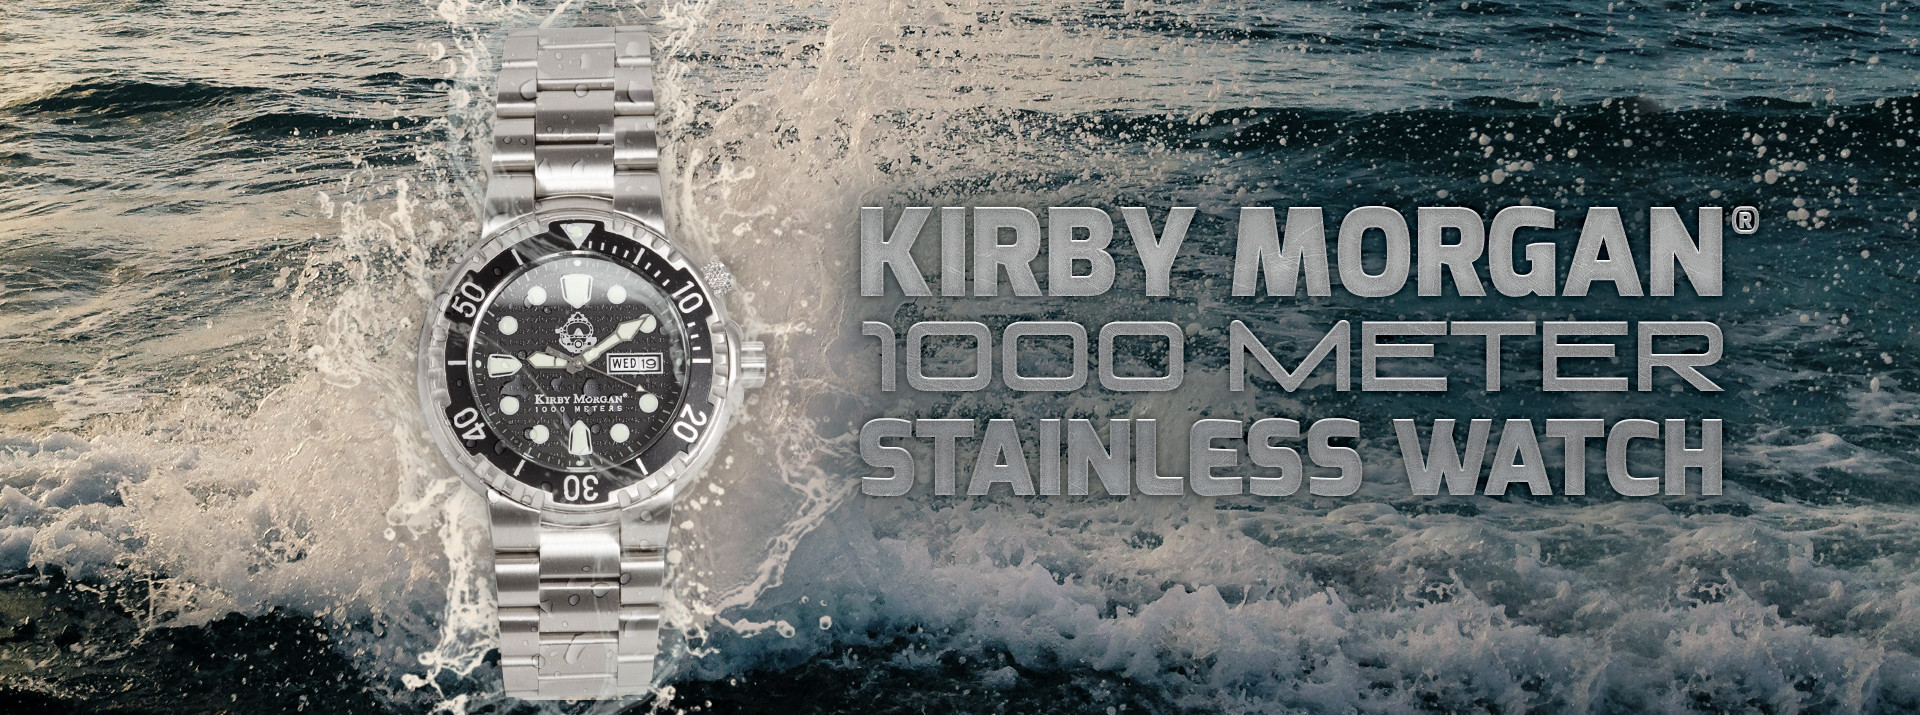 1000 Meter Stainless Steel Watch